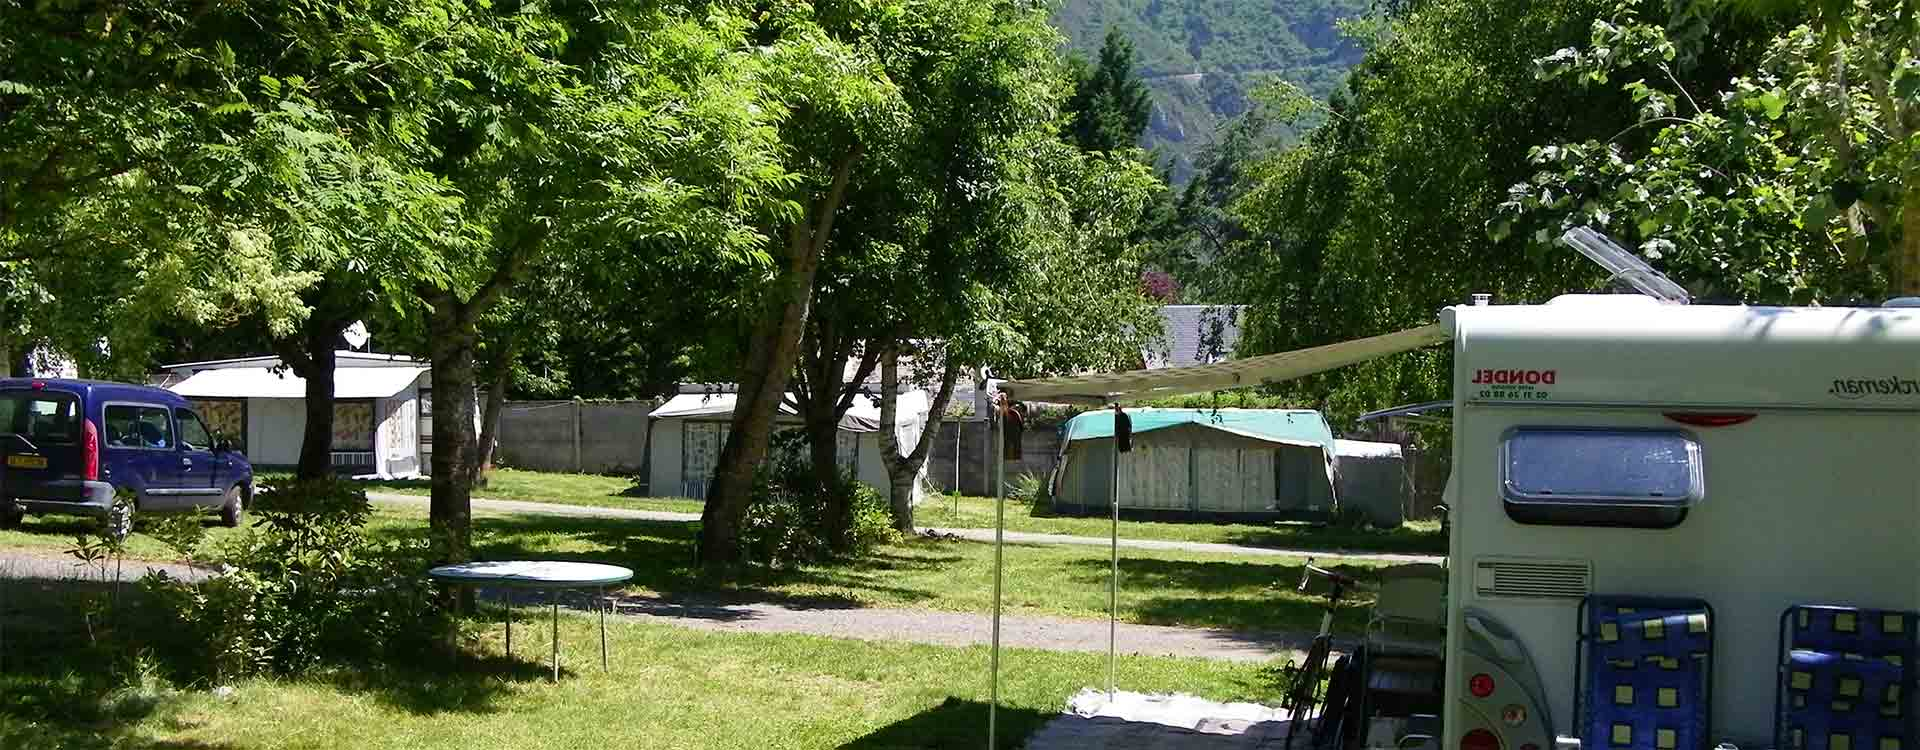 emplacement camping saint lary hautes pyrenees